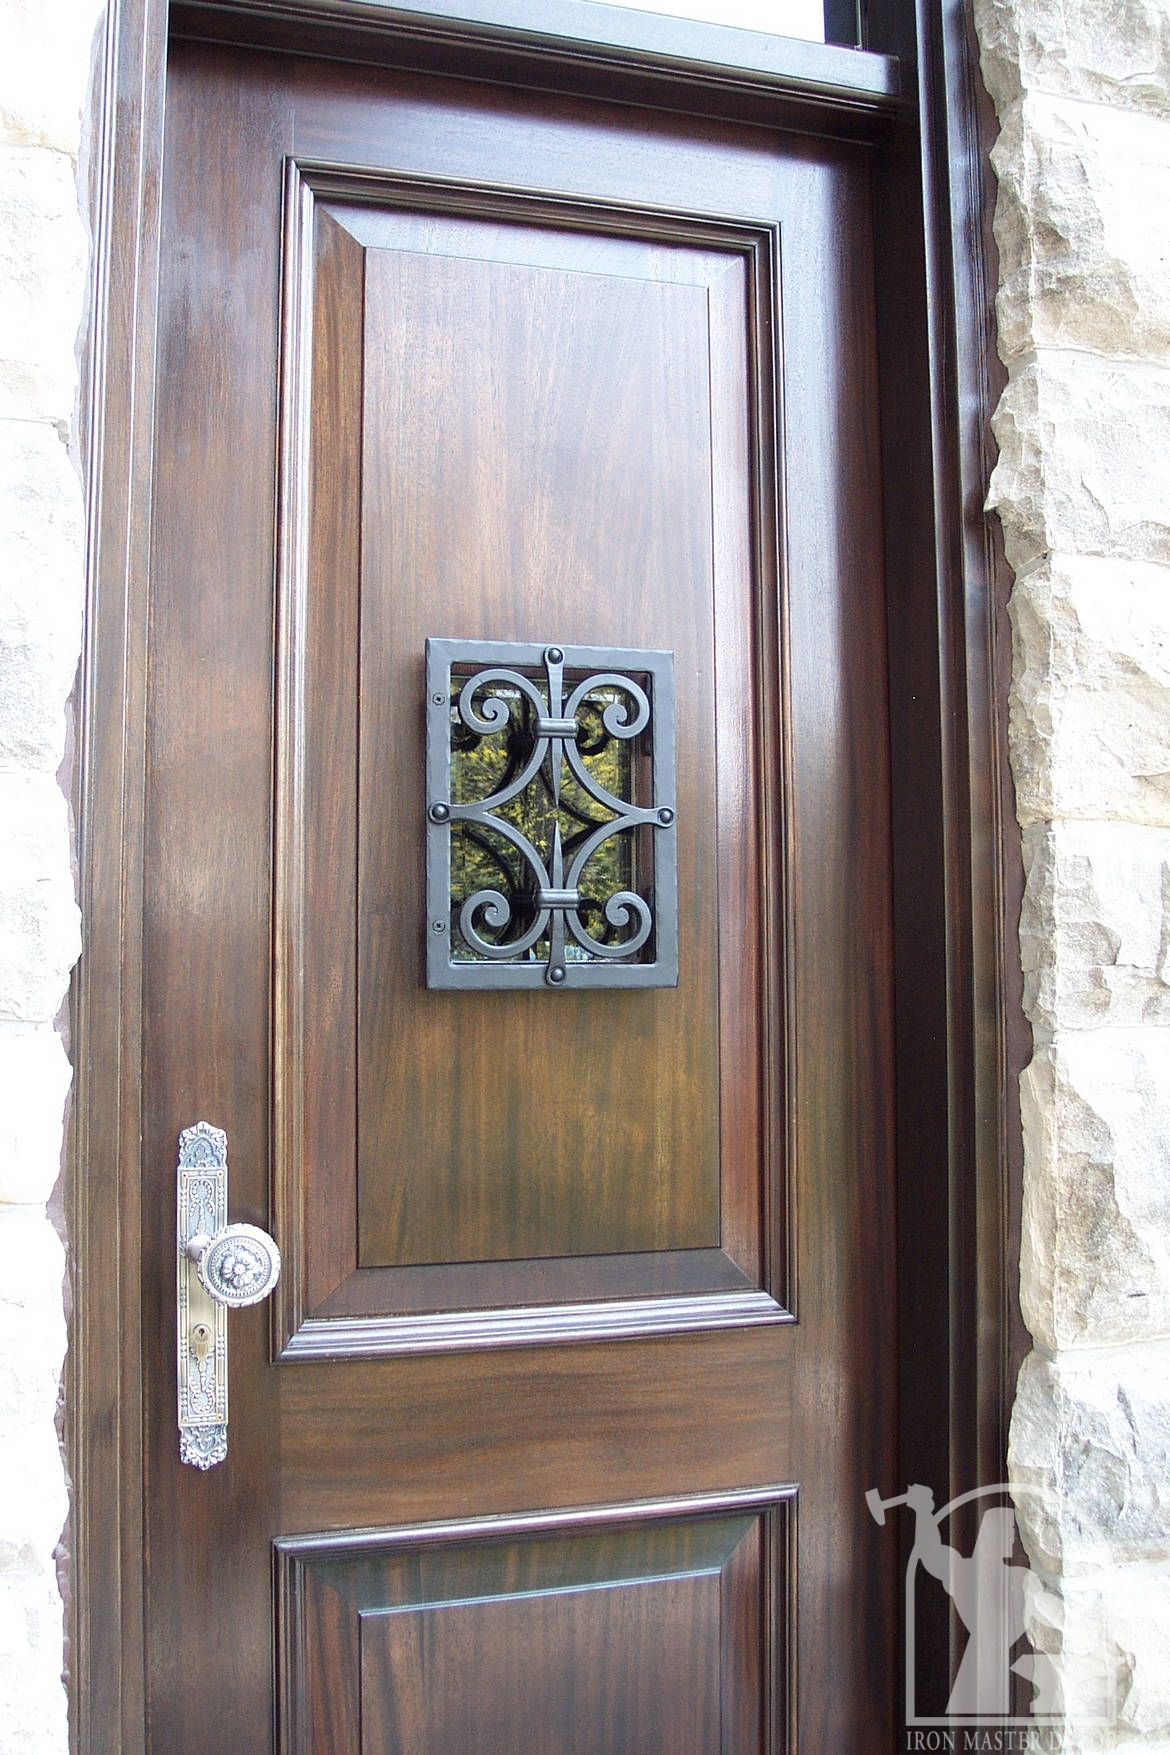 1755 #4B6480 Wrought Iron Front Door Photo Gallery Iron Master picture/photo Rod Iron Front Doors 43091170